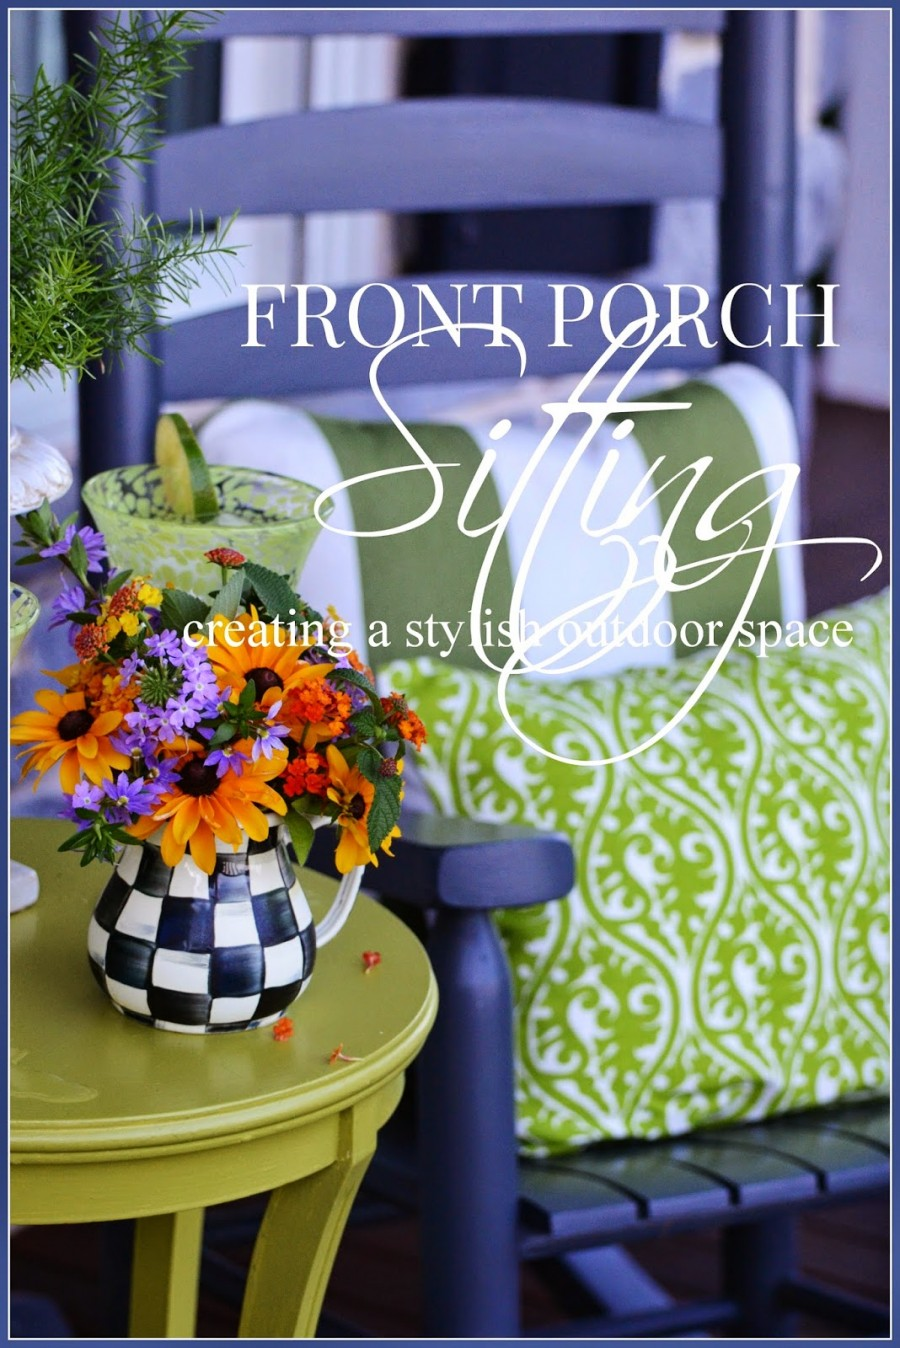 FRONT PORCH SITTING… CREATING A STYLISH OUTDOOR SPACE